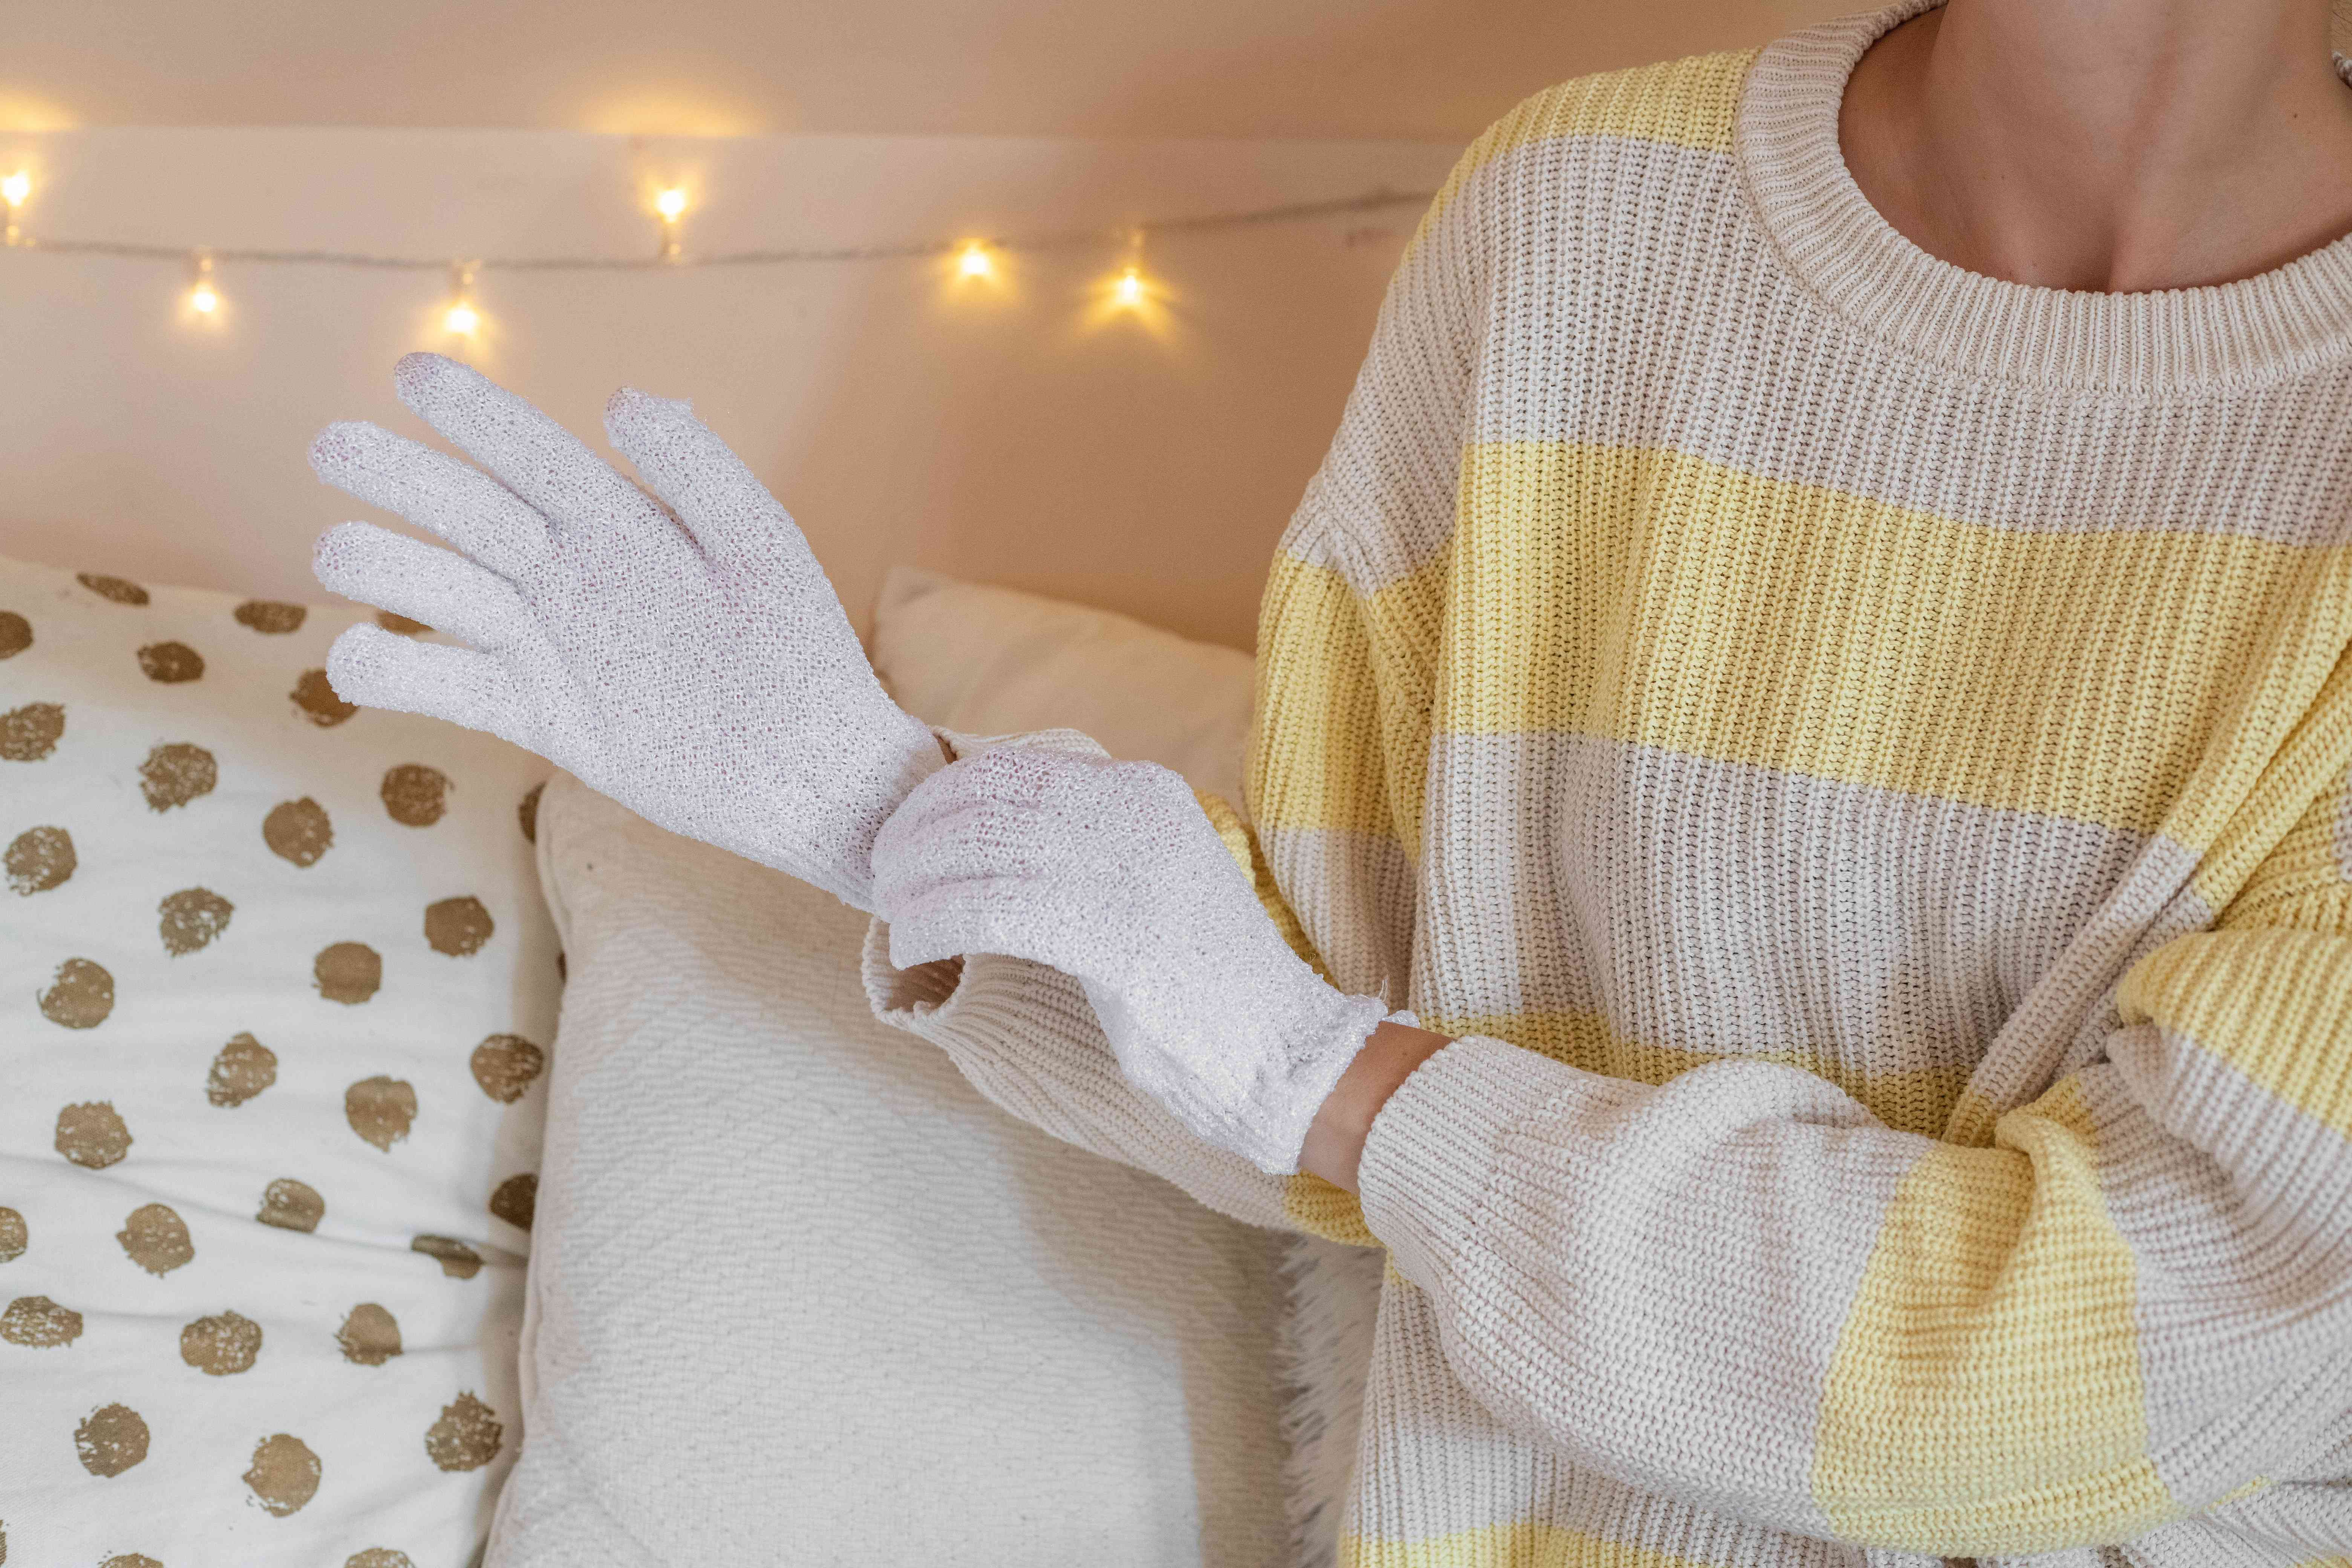 woman slips on white cotton gloves to lock in moisture before going to bed